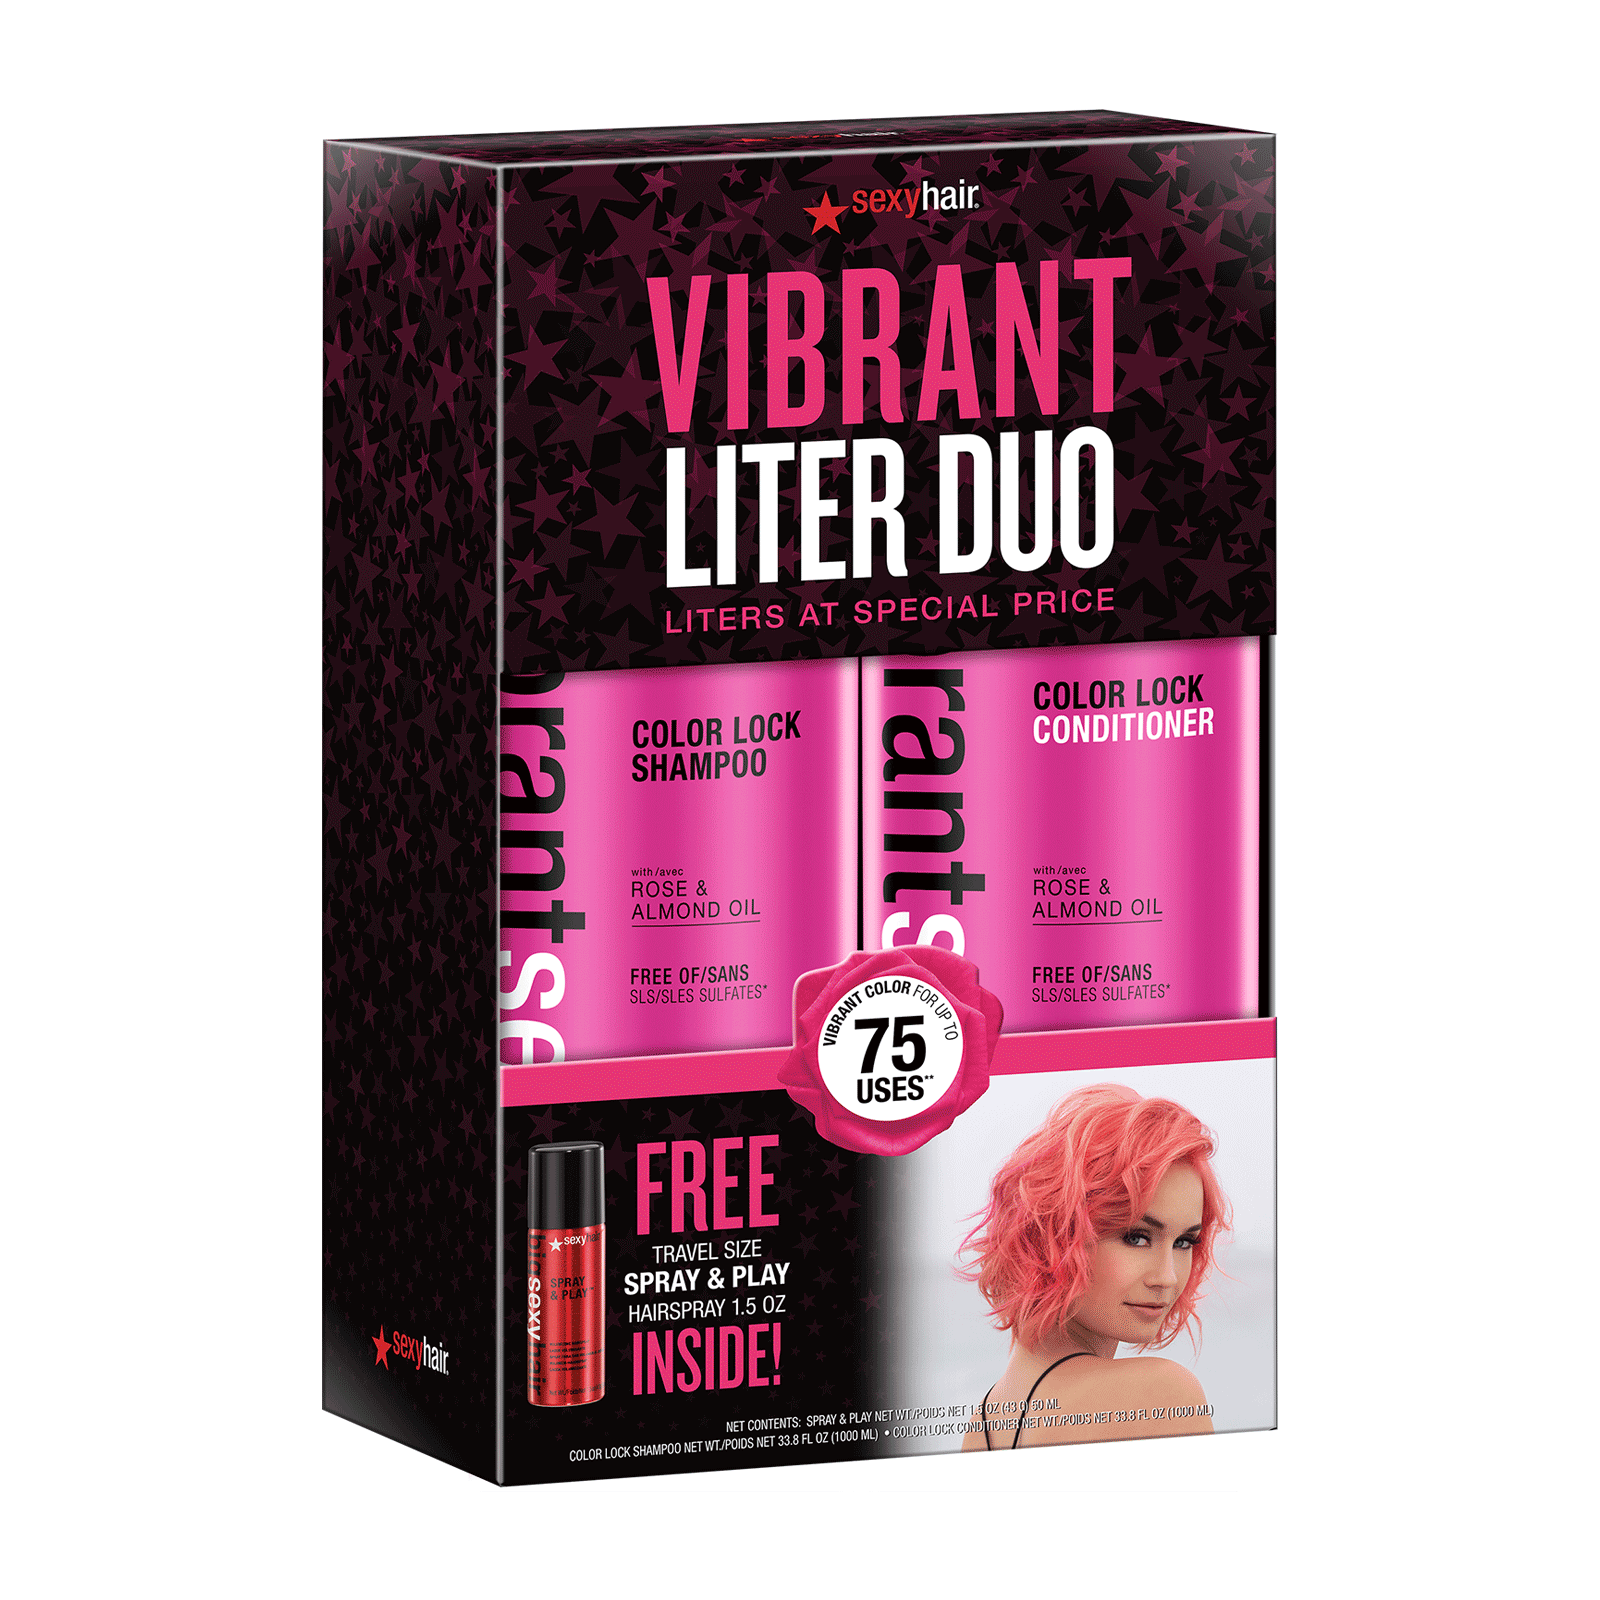 Vibrant Sexy Hair Liter Duo with Free Mini Spray & Play